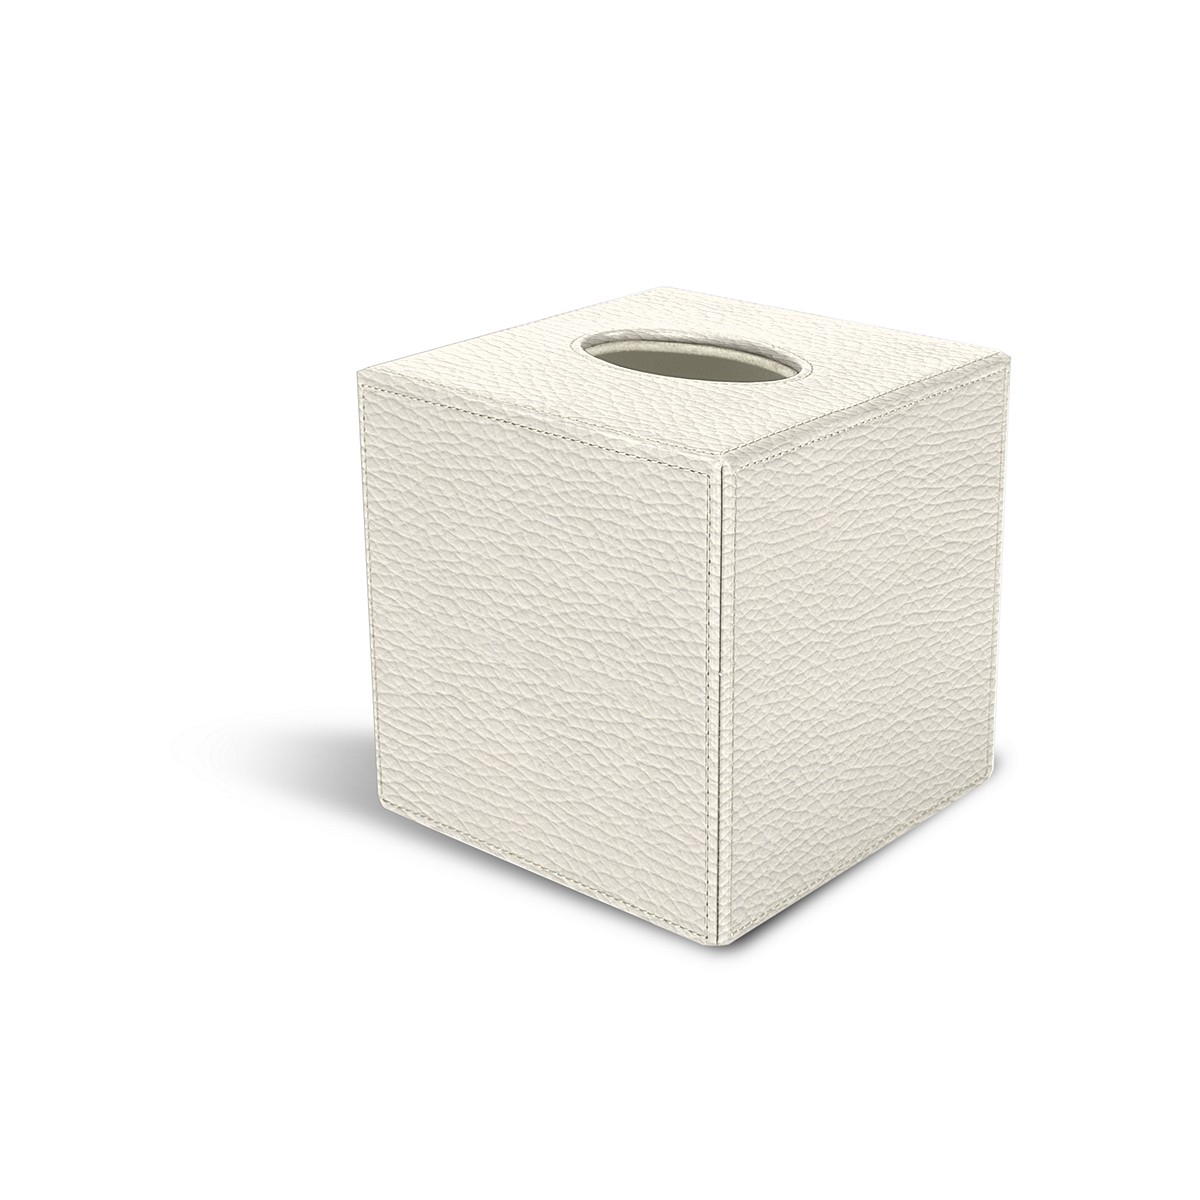 Squared tissue box holder